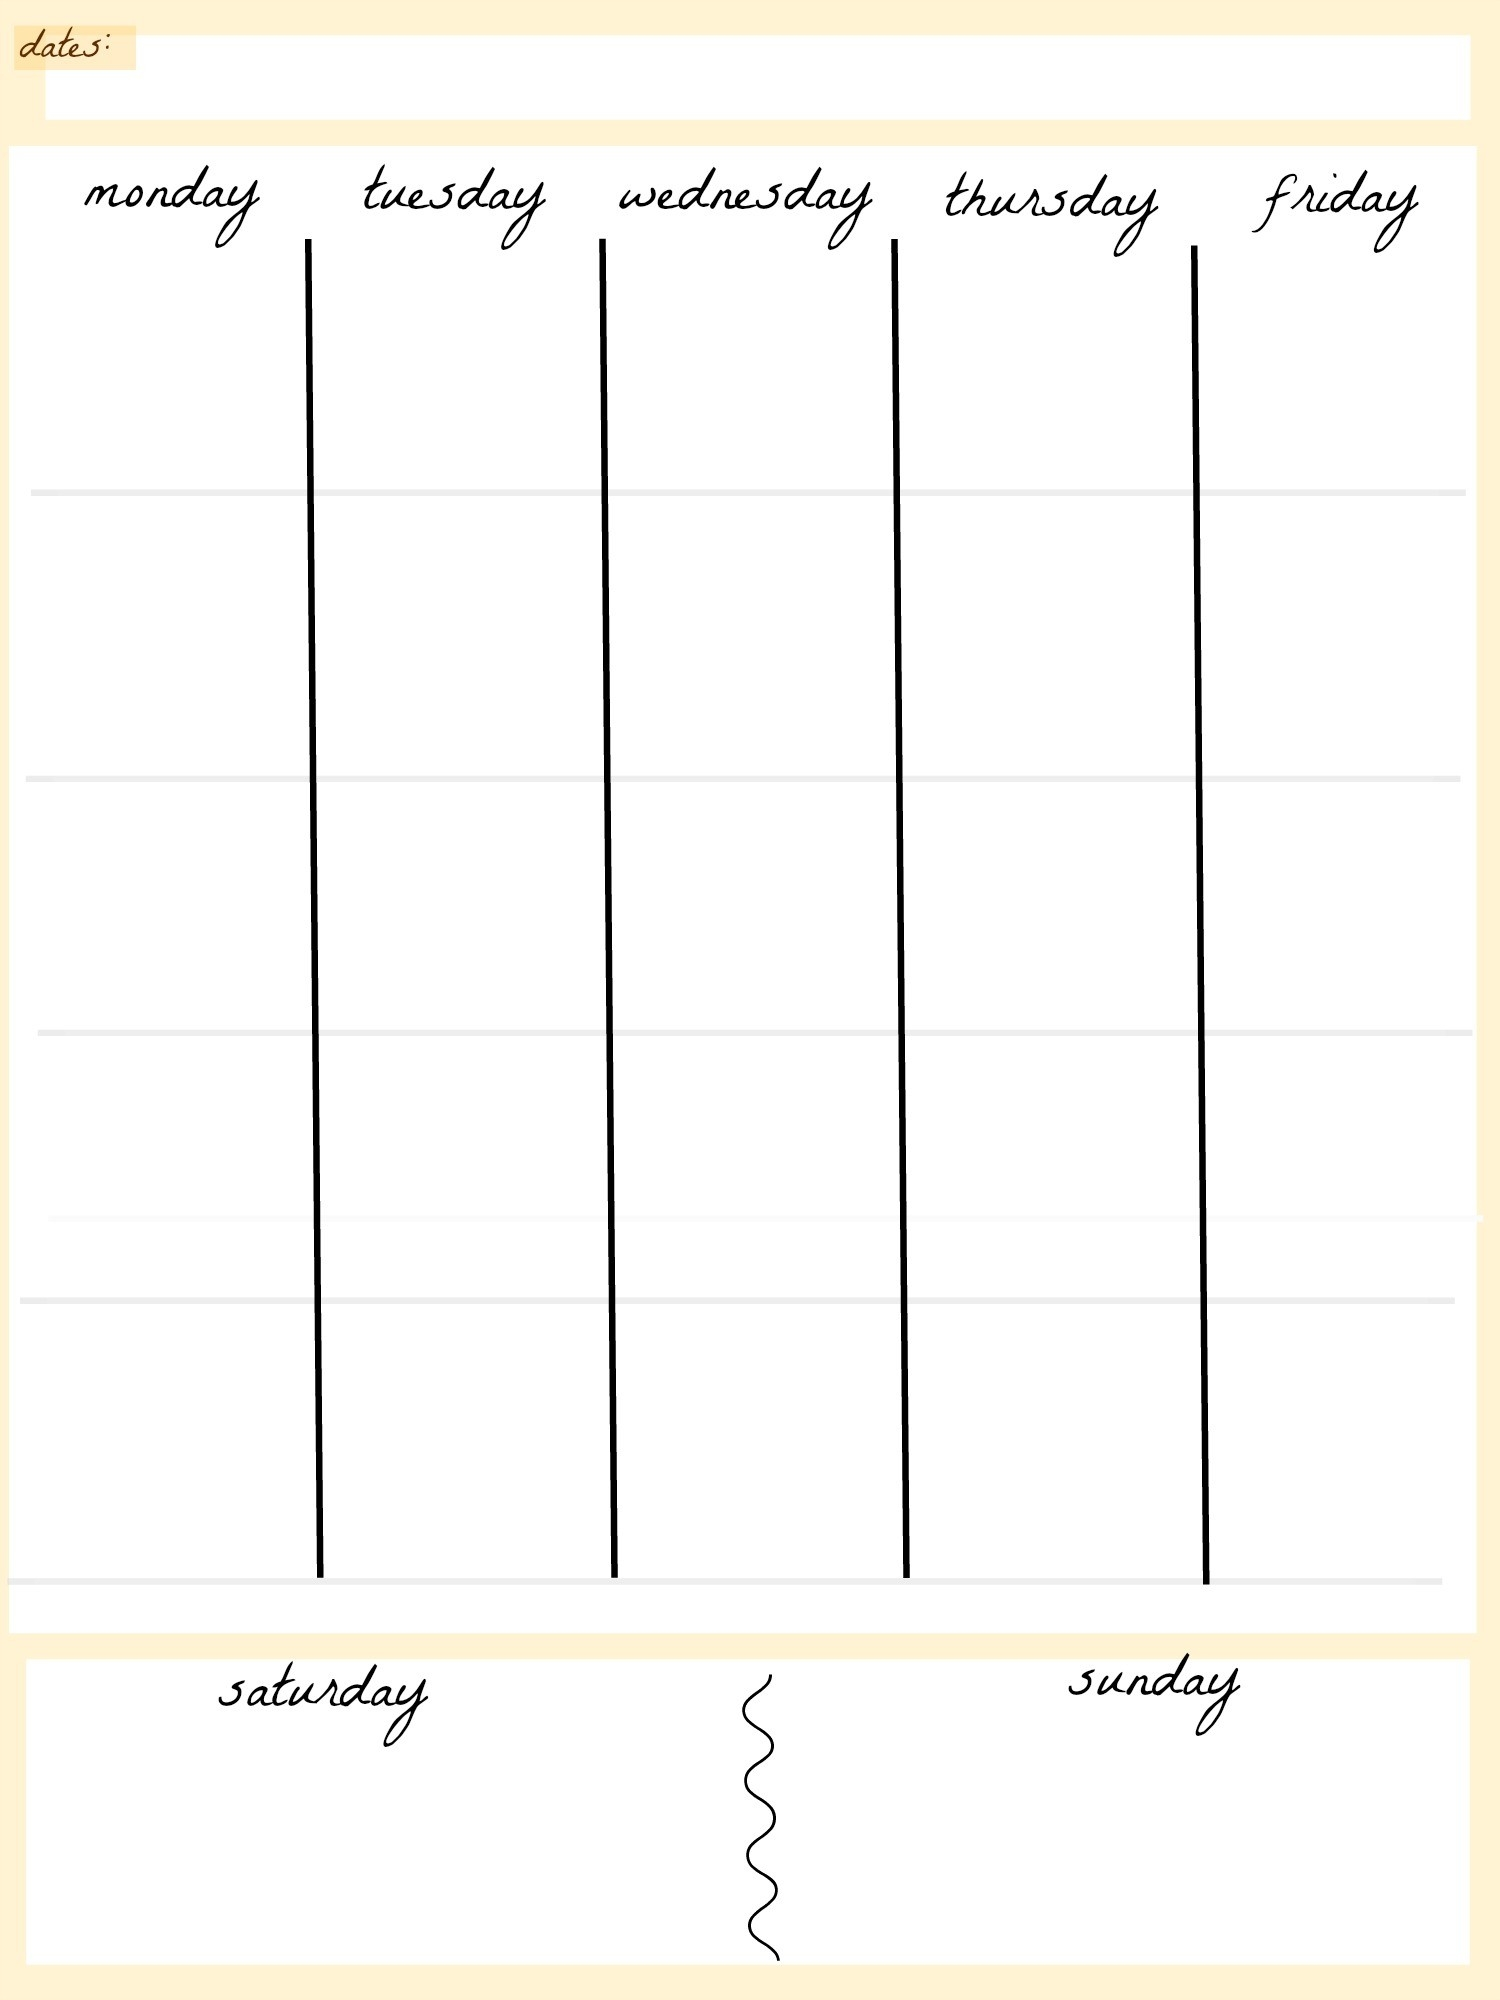 weekly calendar with times slots printable Weekly Calendar With Time Slots Template erdferdf